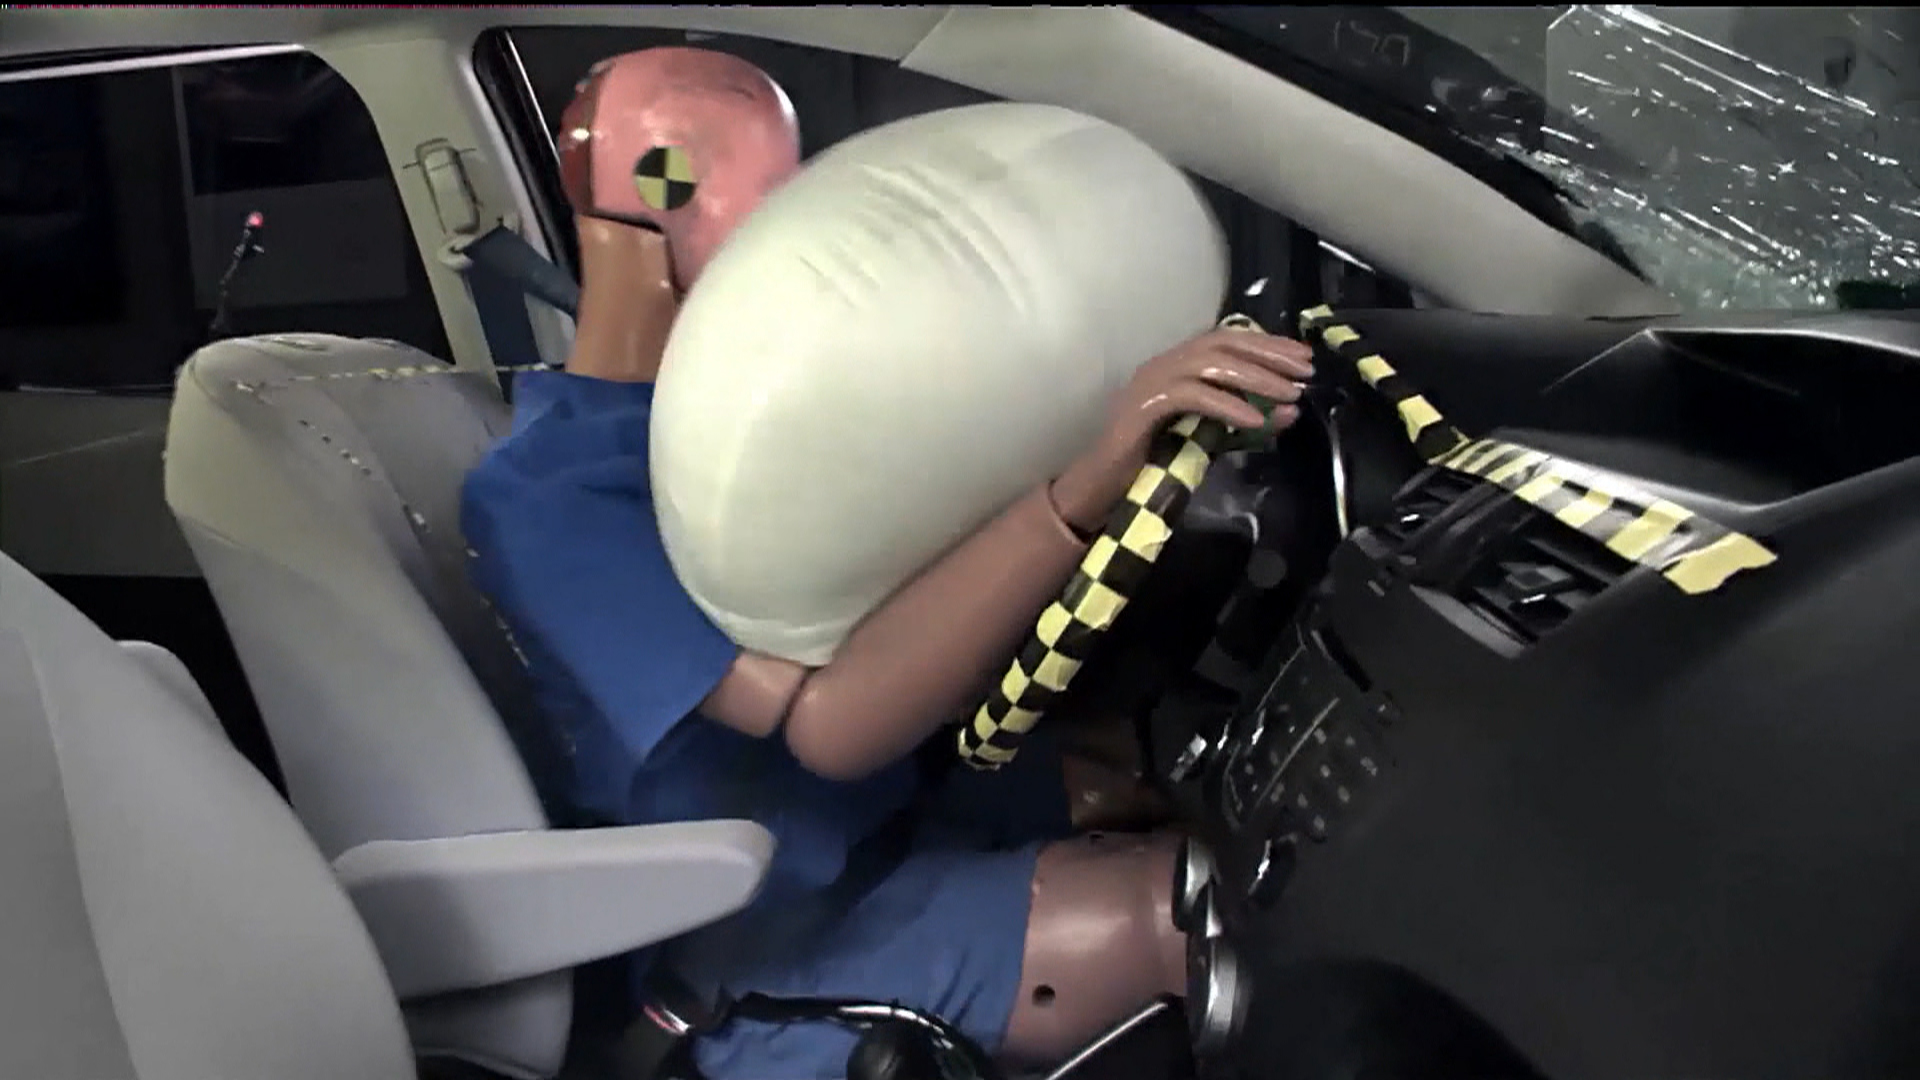 Potential Air Bag Defect Dangers